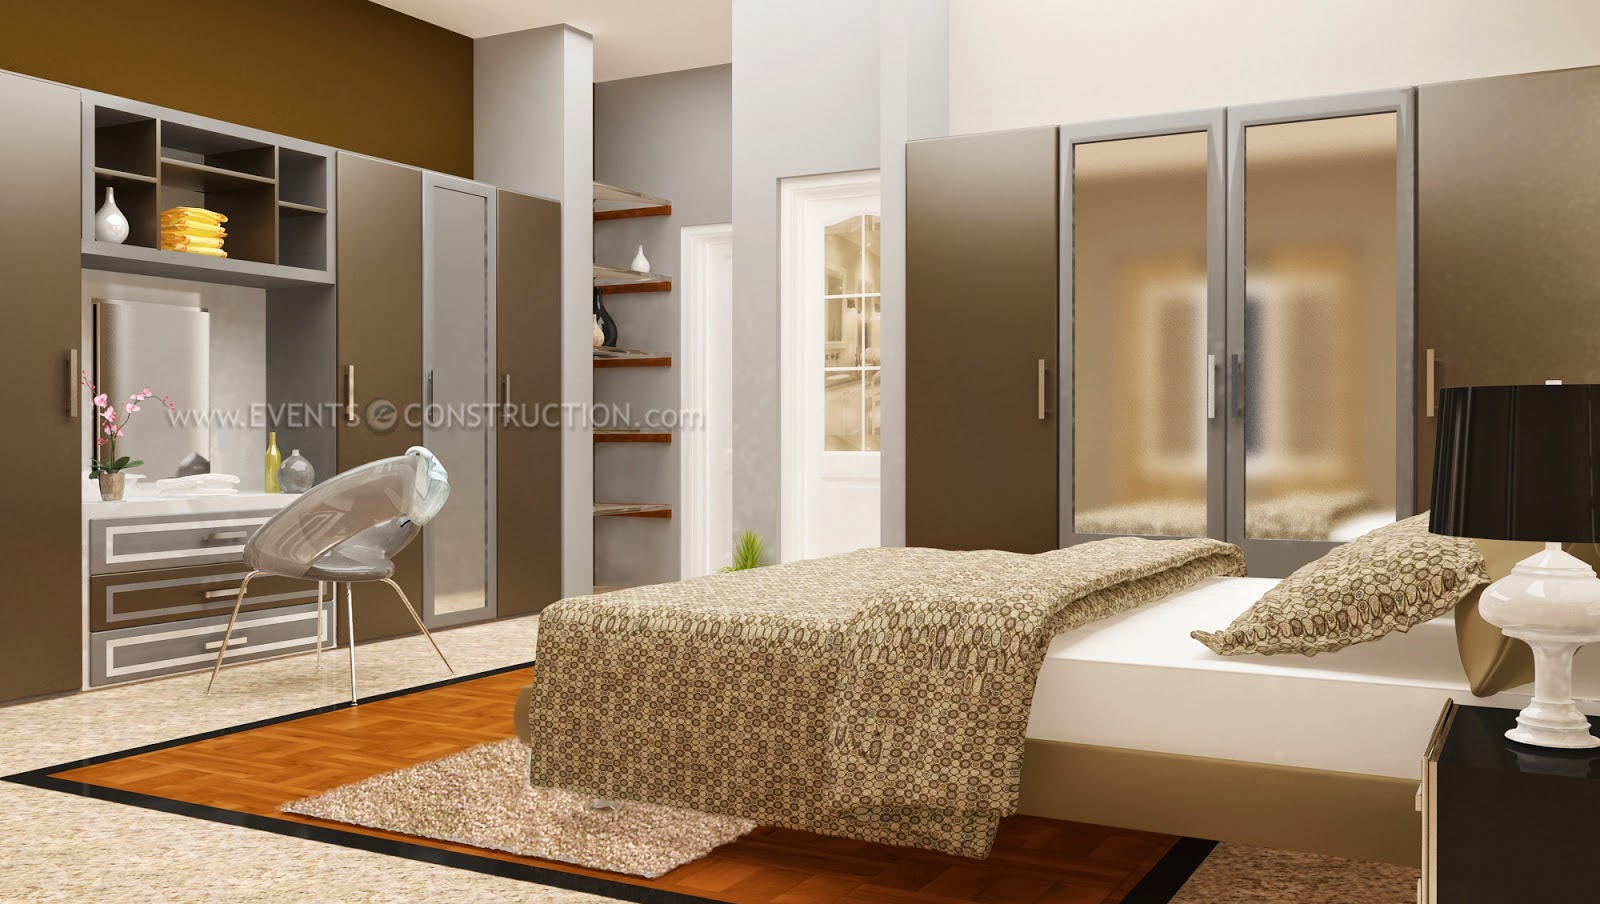 Evens construction pvt ltd bedroom interior design for 4 door wardrobe interior designs